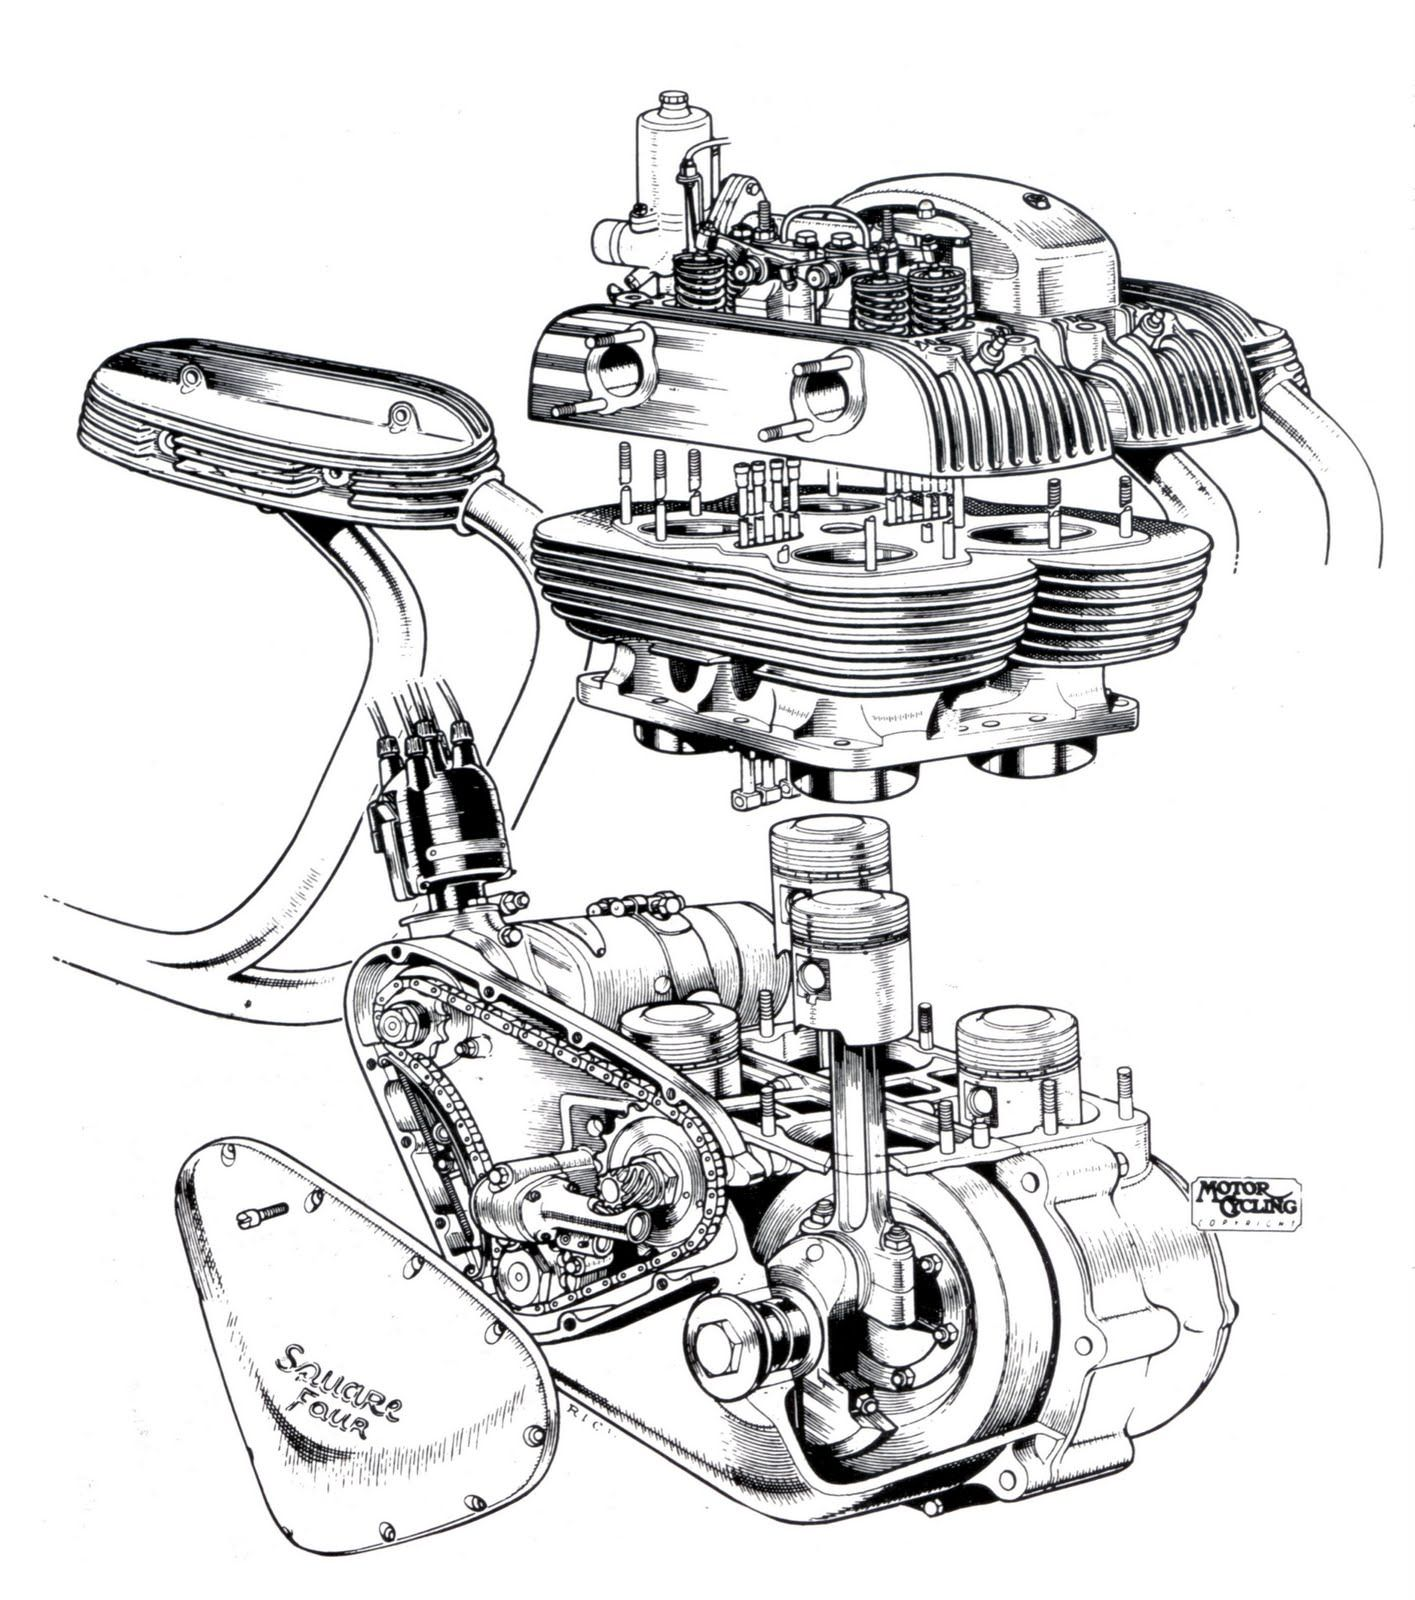 Ariel Square Four Wallpaper Motorcycle Engine Motorcycle Art Classic Motorcycles